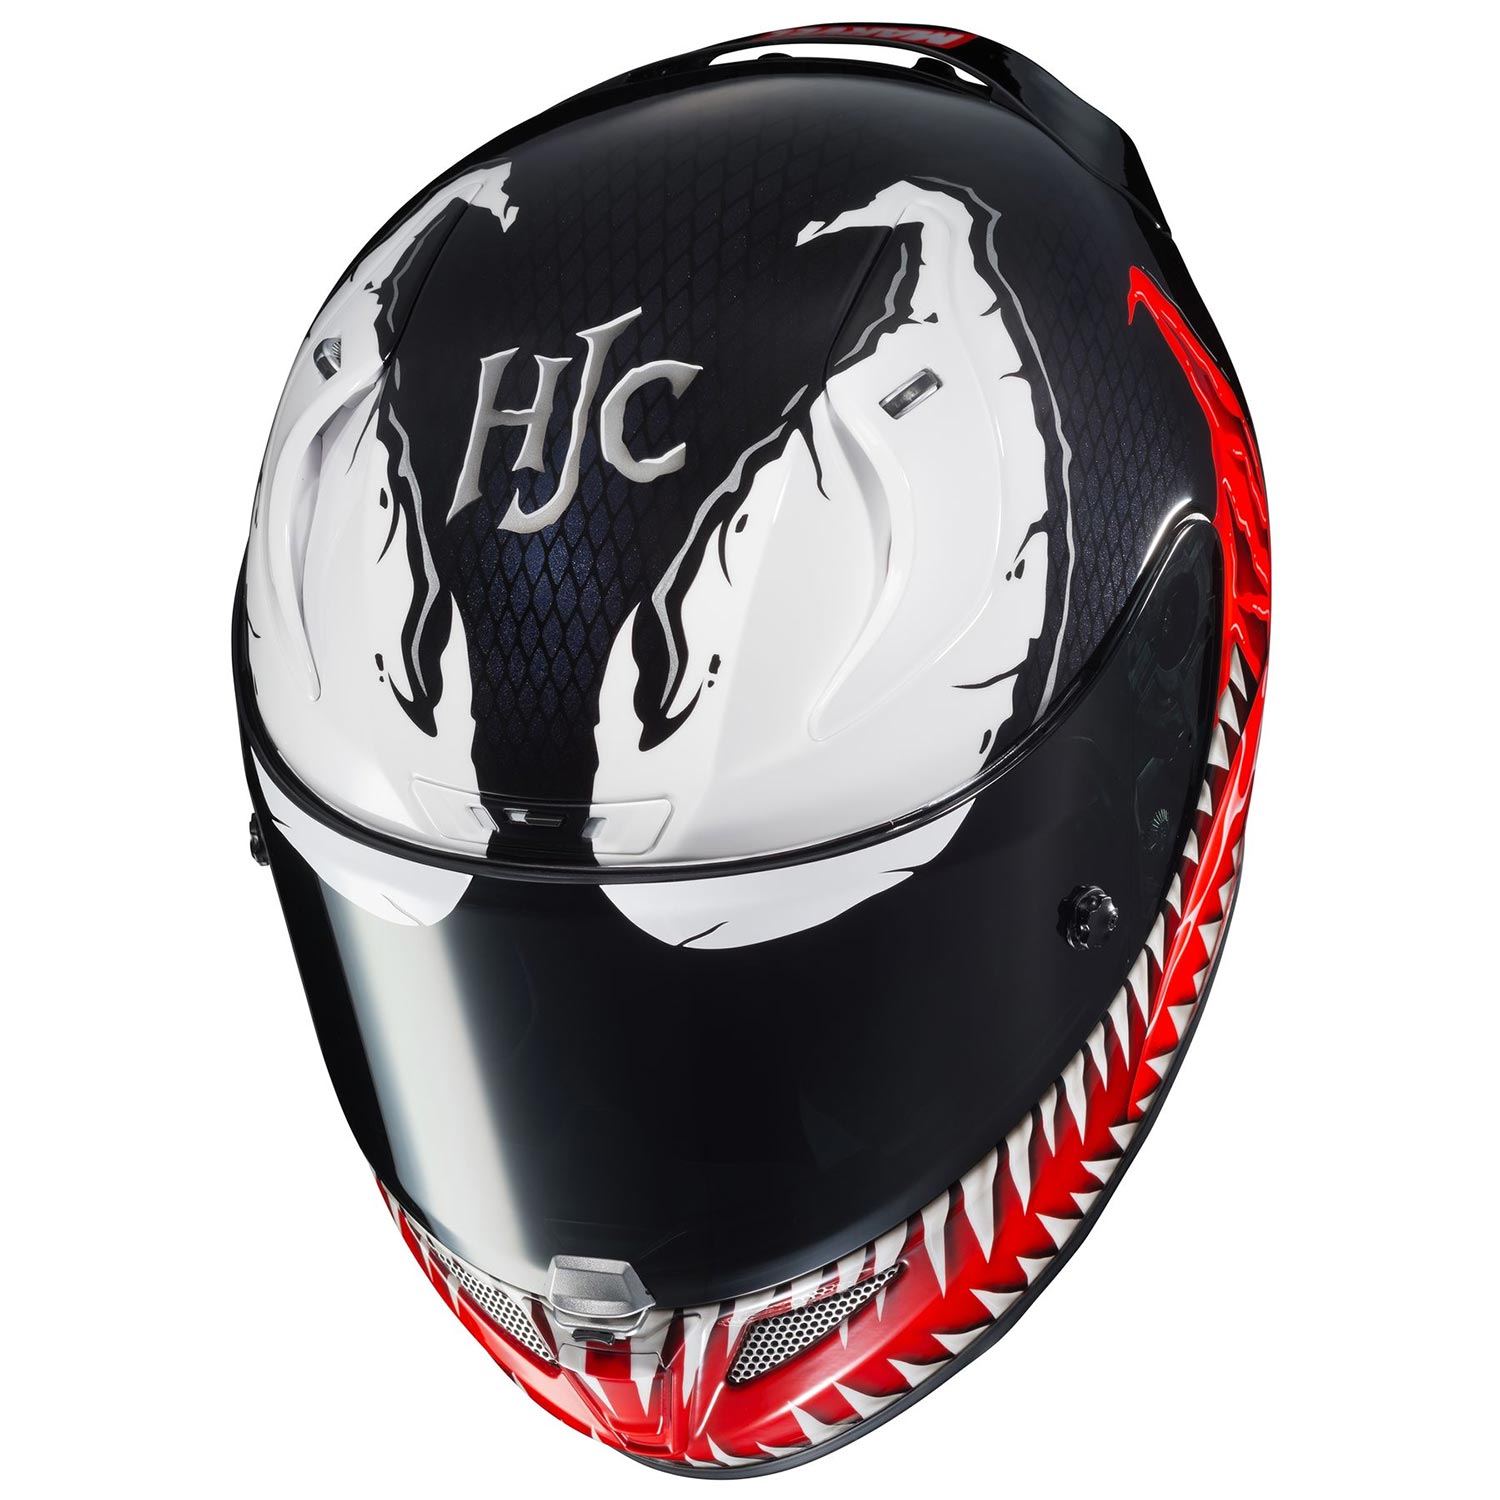 venom motorcycle helmet geekalerts. Black Bedroom Furniture Sets. Home Design Ideas